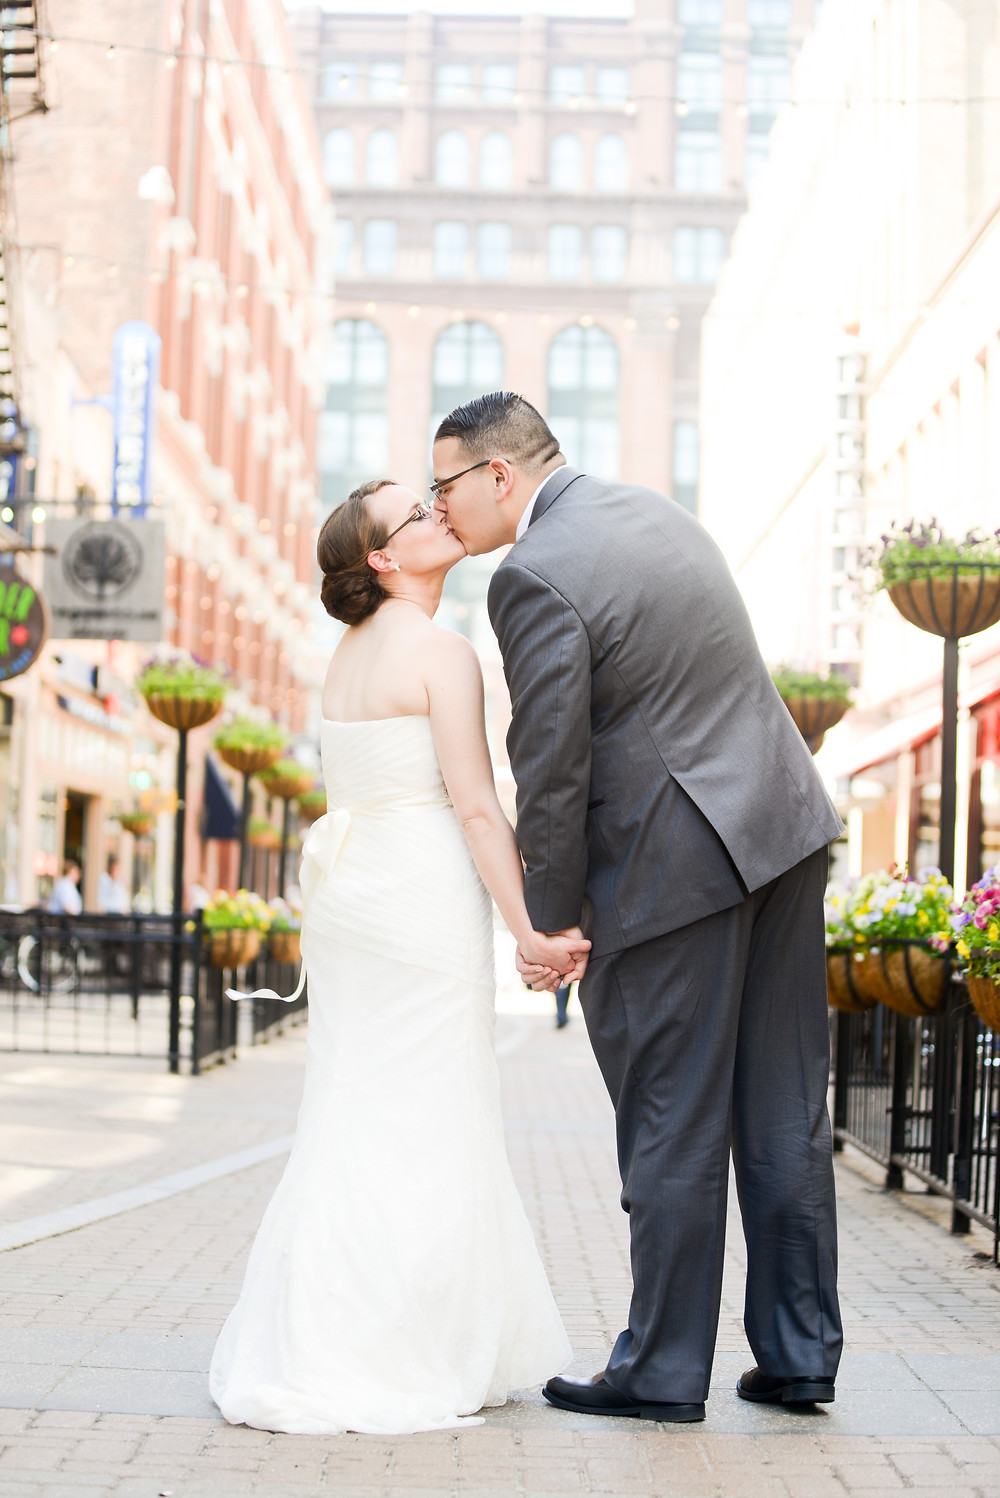 Bride and groom kiss standing on East 4th Street in Cleveland, OH